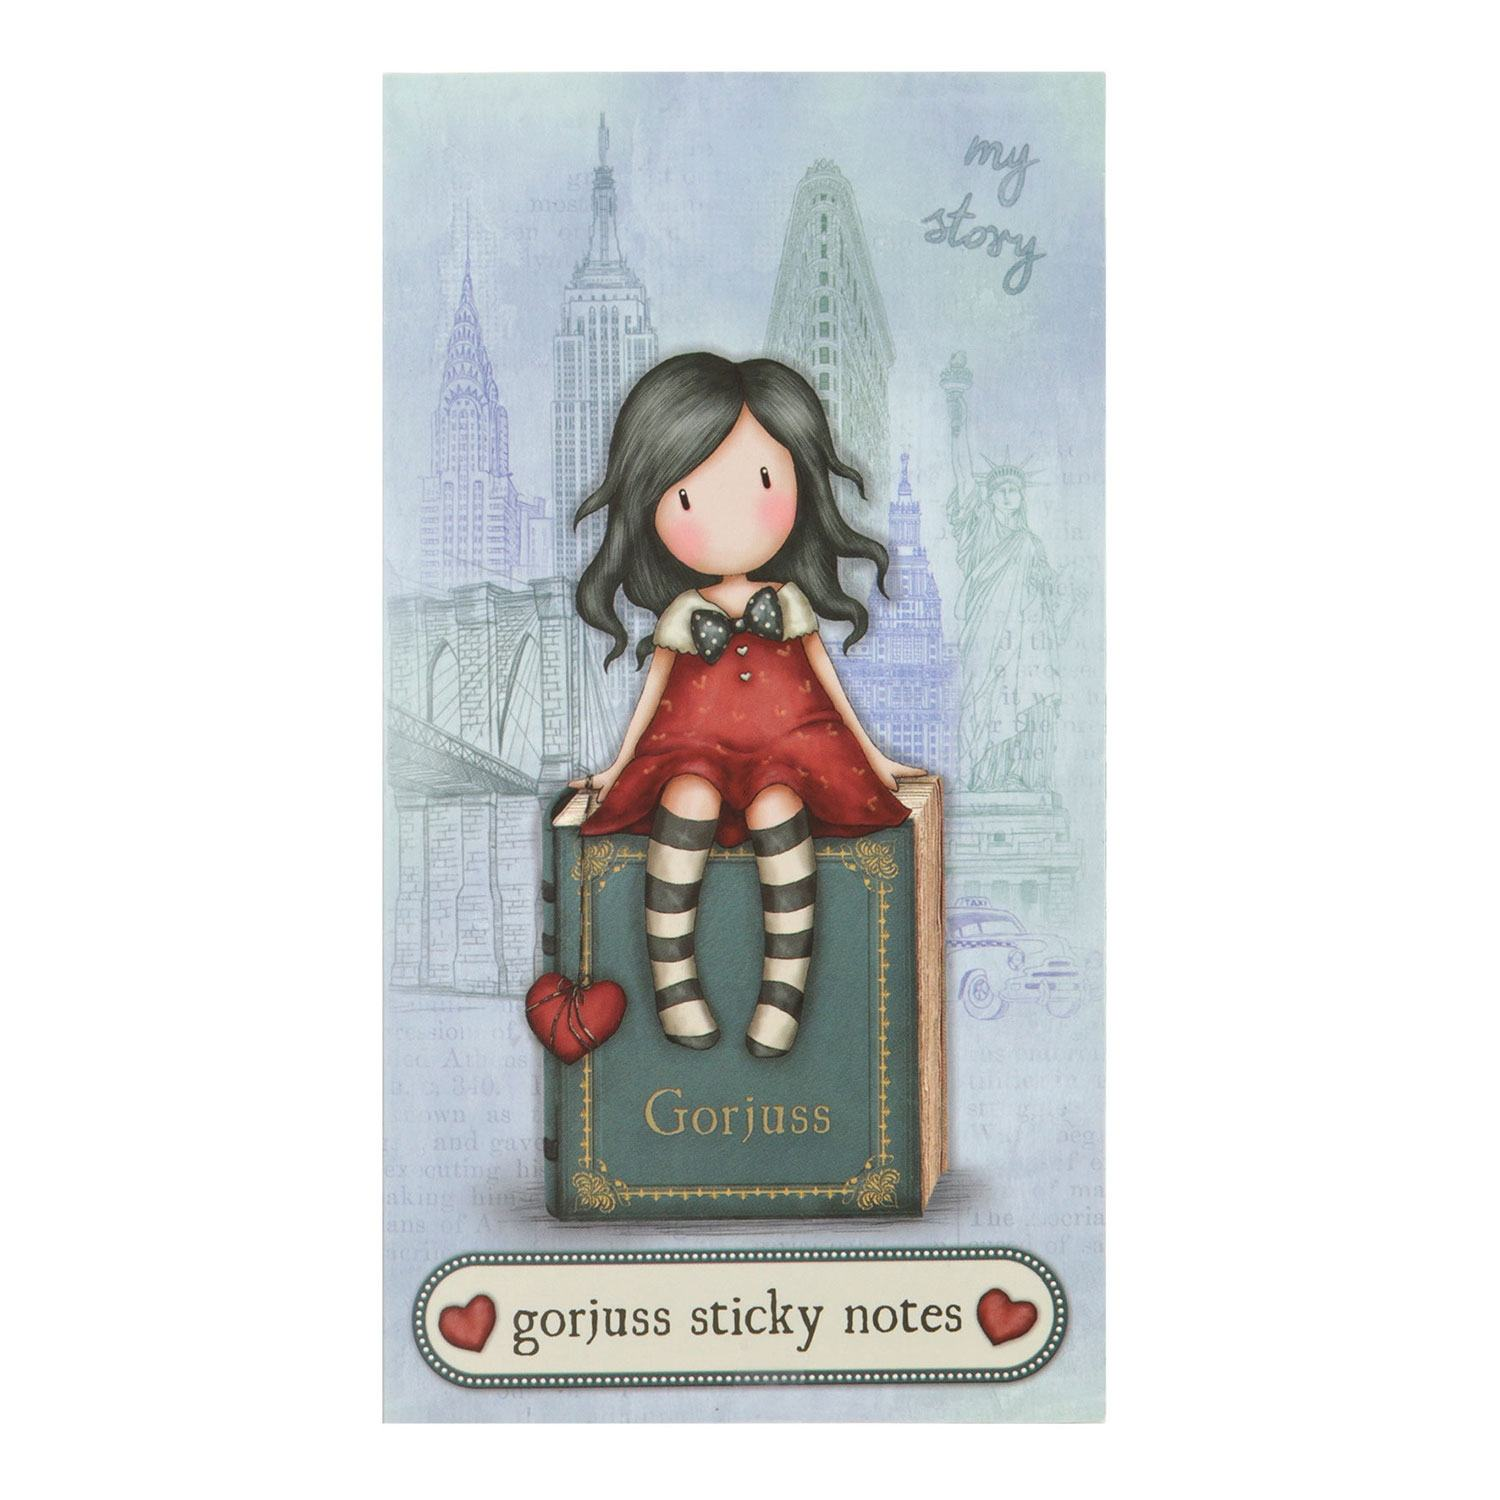 Desktop Articles & Accessories|Paper, Writing Pads etc.|Stamps|Purses & Wallets|Calendars|Gifts for Women|Wedding Gorjuss Cityscape My Story Book of Sticky Notes